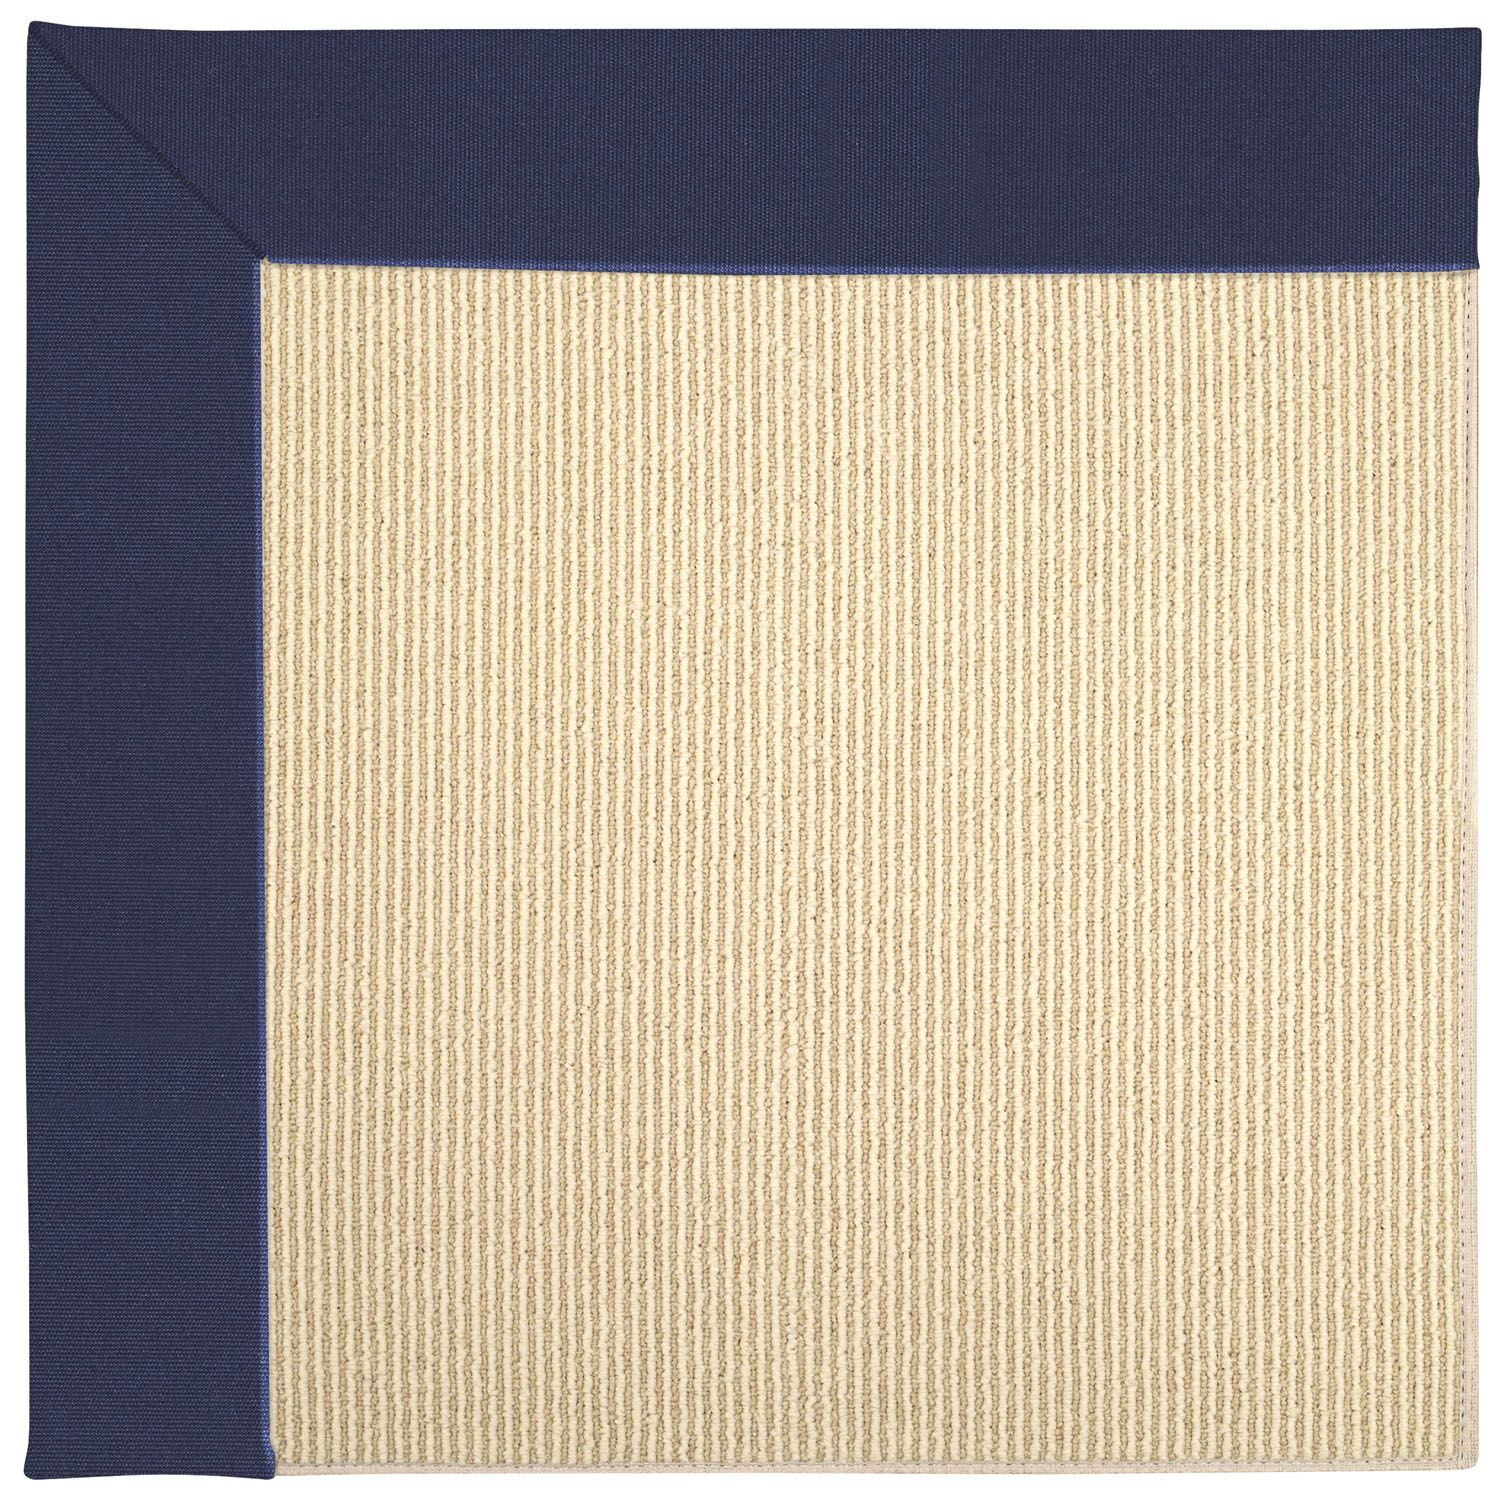 Lisle Machine Tufted Navy/Beige Indoor/Outdoor Area Rug Rug Size: Rectangle 5' x 8'